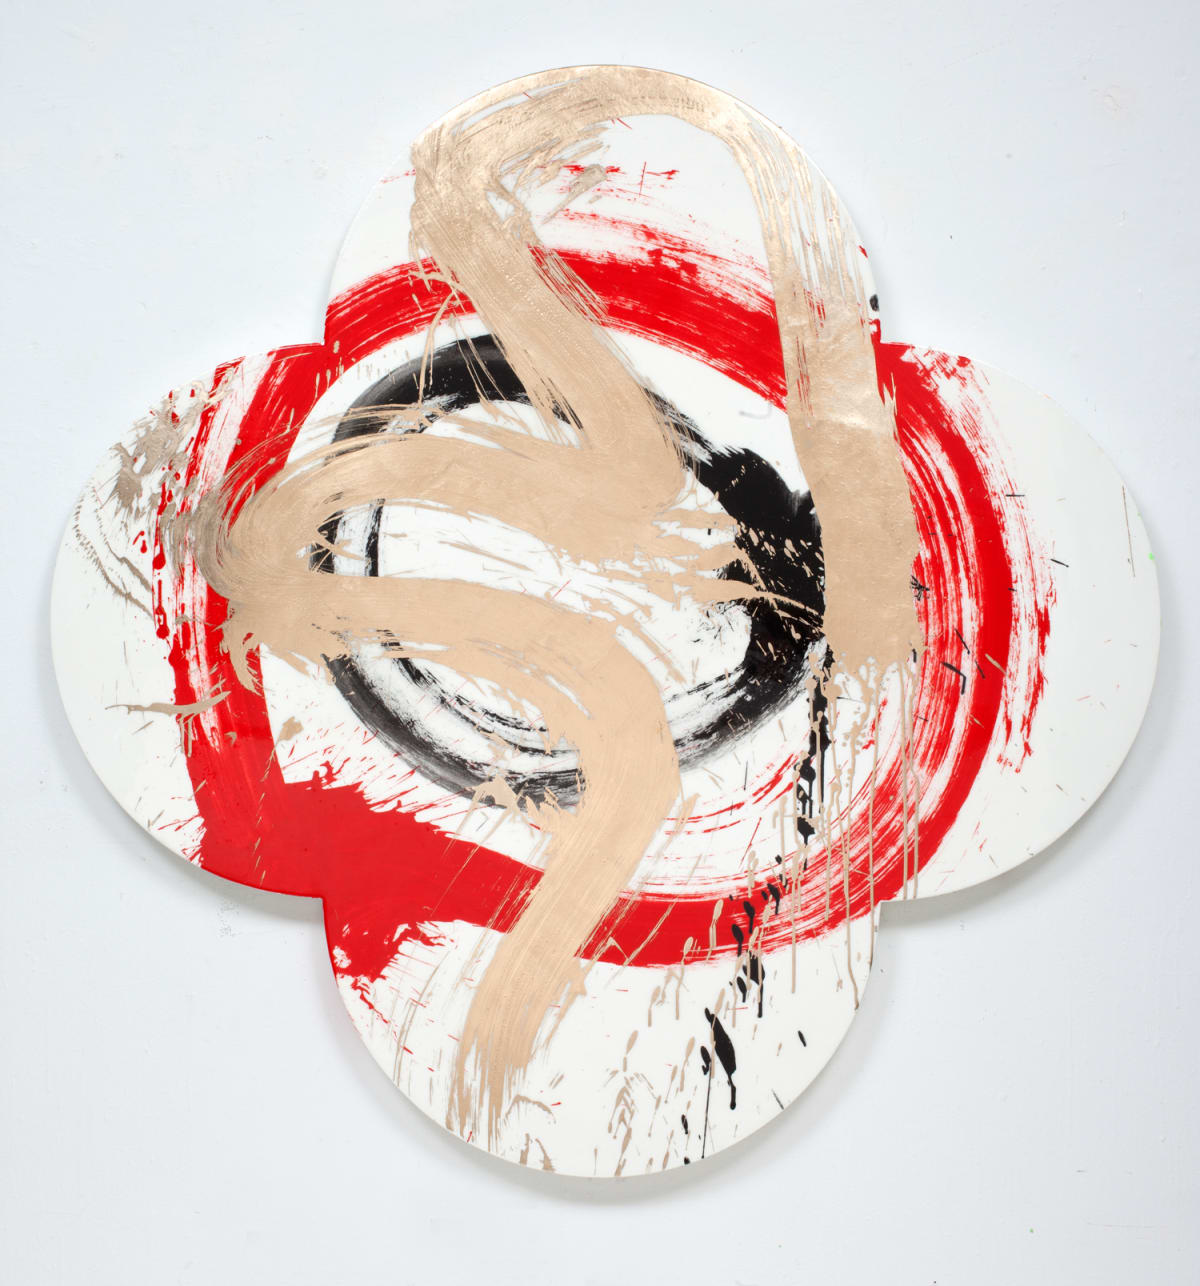 Max GIMBLETT Jason and the Argonauts, 2012 Mixed media 60 x 60 in 152.4 x 152.4 cm